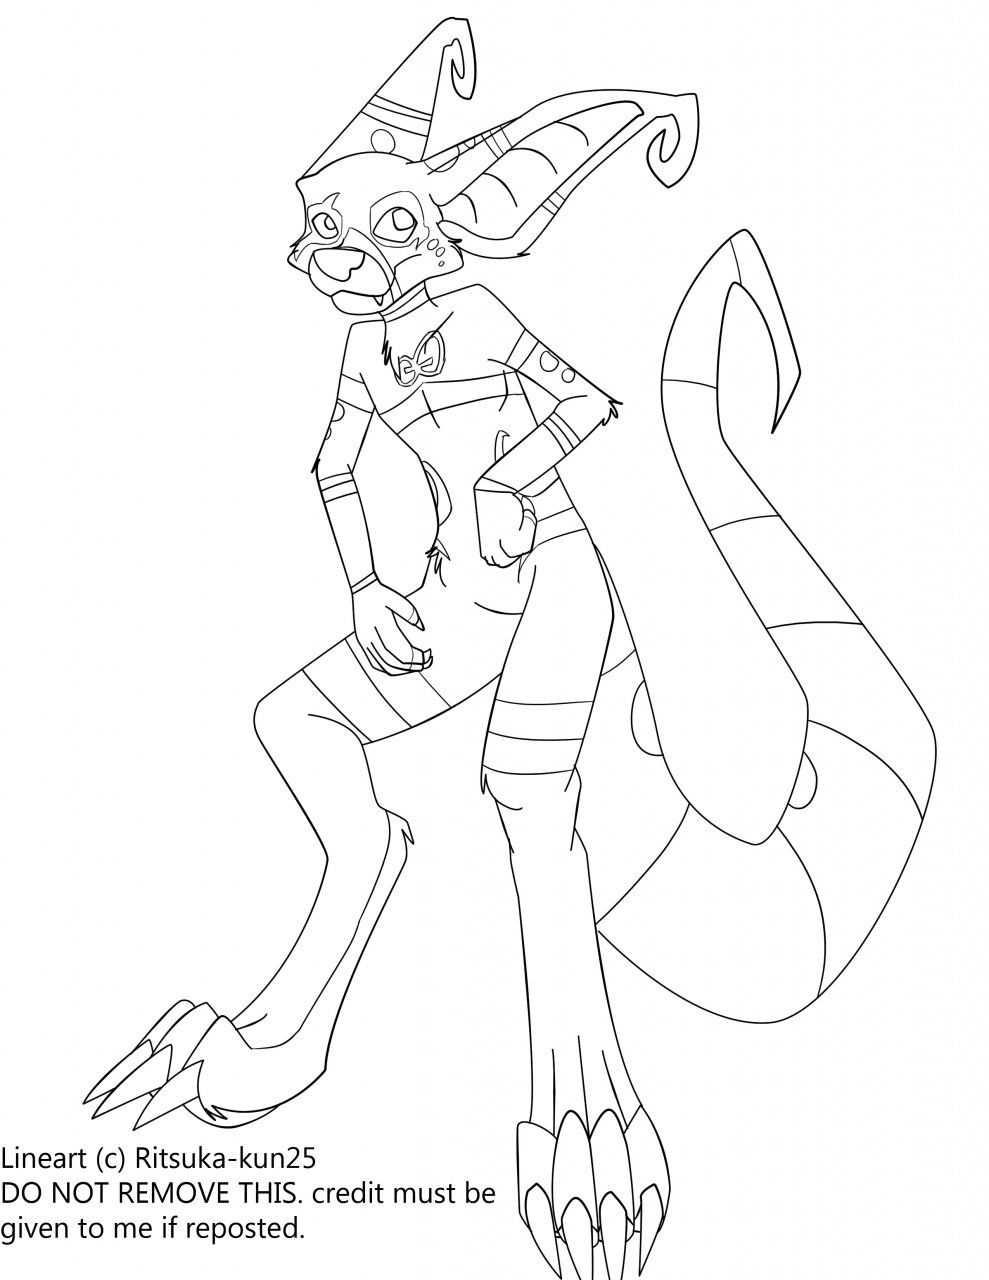 Crux lineart- with markings